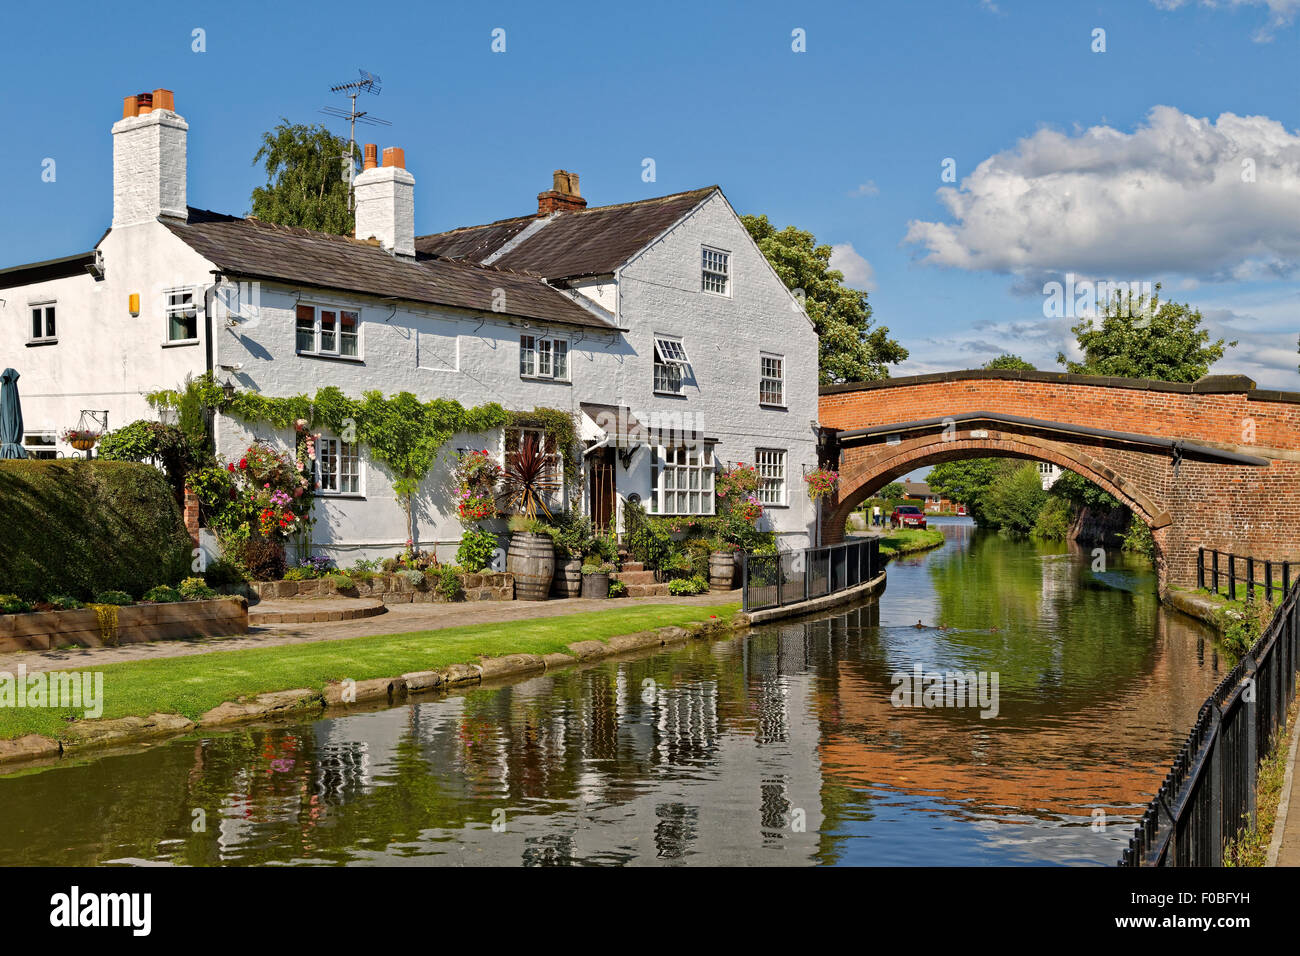 House and cottage on the banks of the Bridgewater canal at Lymm in Cheshire, England. - Stock Image